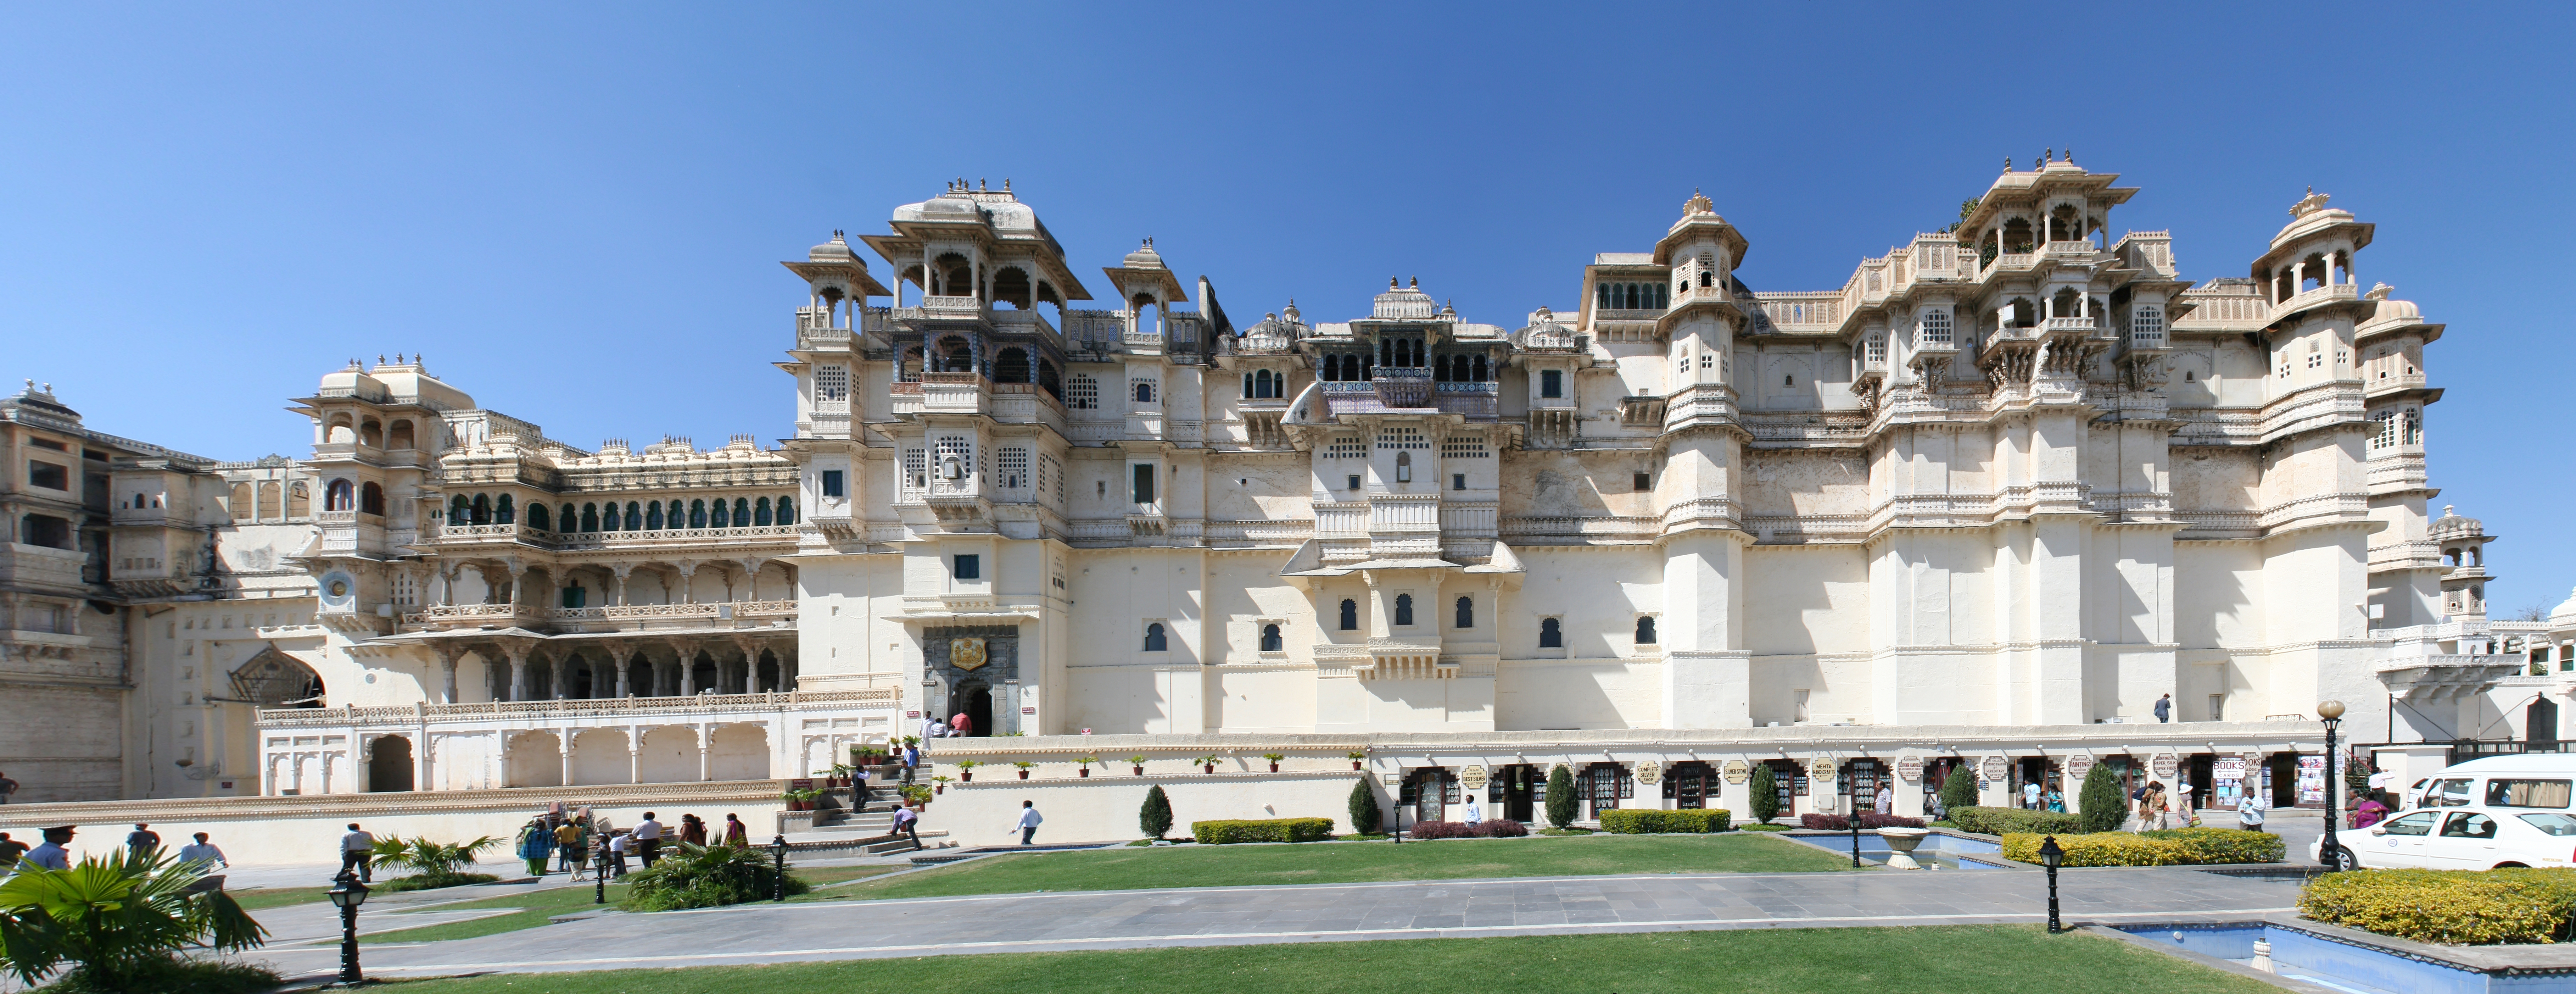 City Palace Udaipur Front